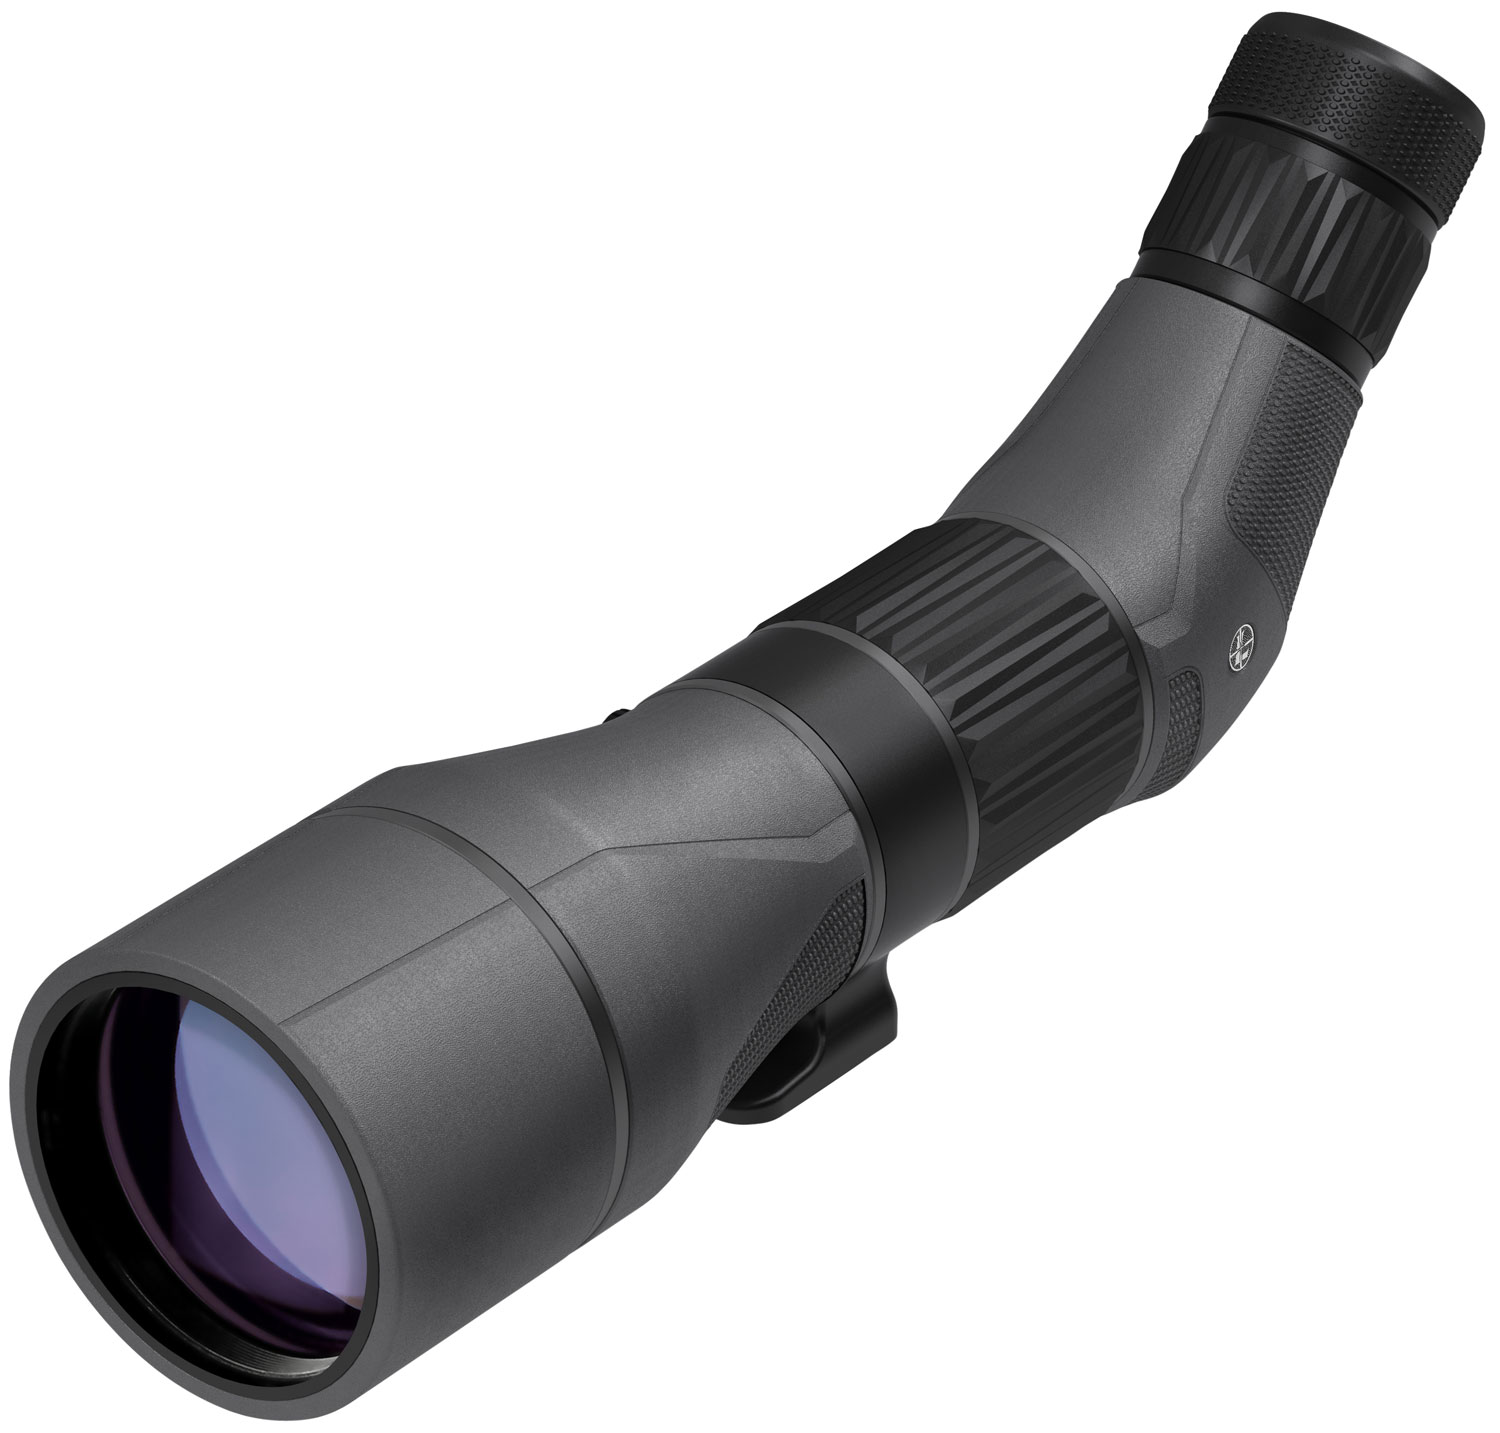 Leupold 175911 SX-5 Santiam HD 27-55x 80mm 105-73 ft @ 1000 yds FOV 19.2-16.6mm Angled Shadow Gray